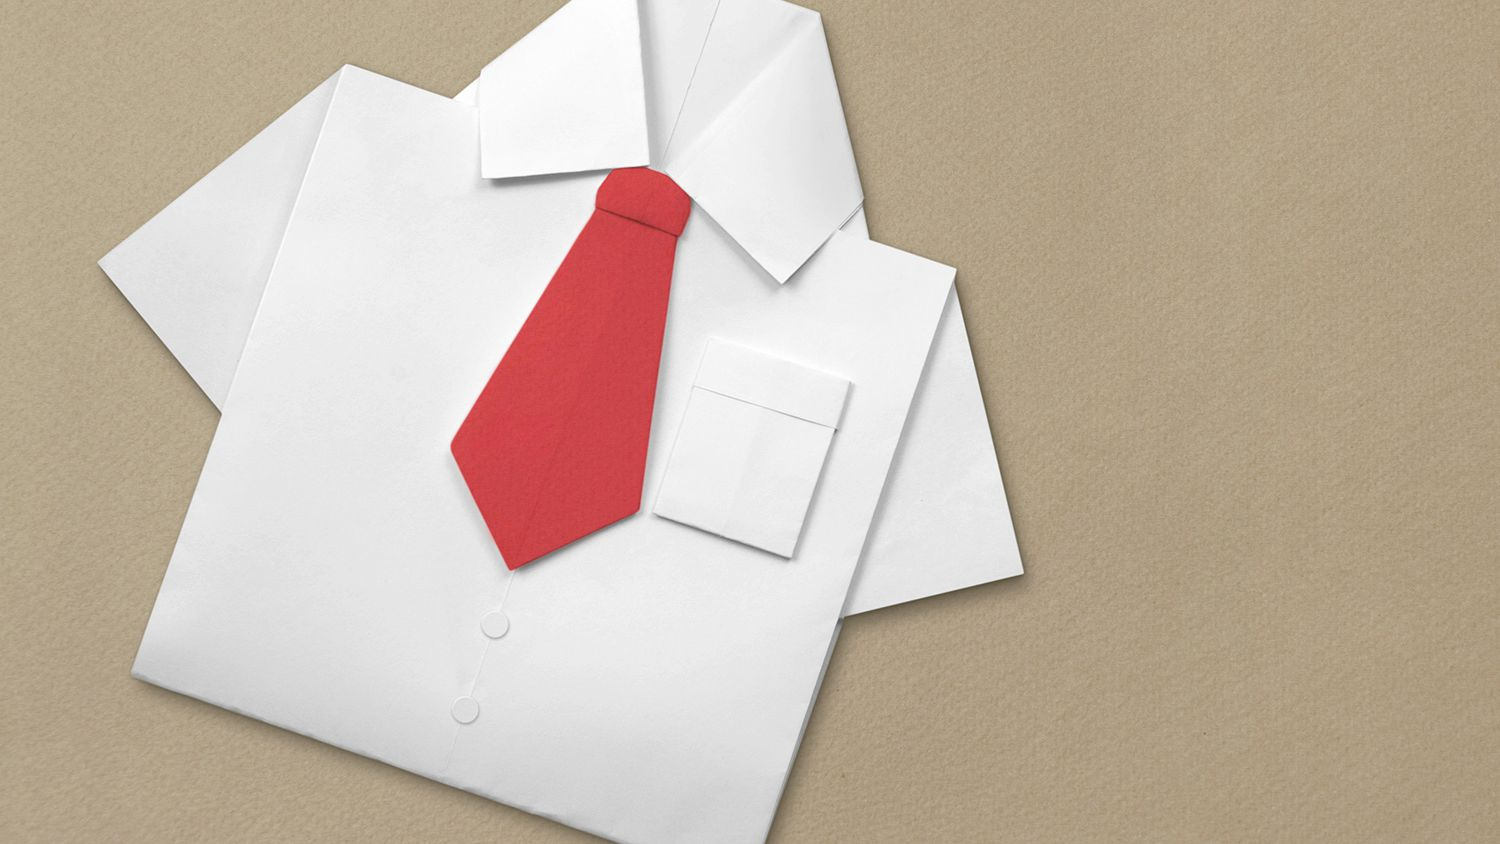 Origami Shirt And Tie Origami Tie Instructions